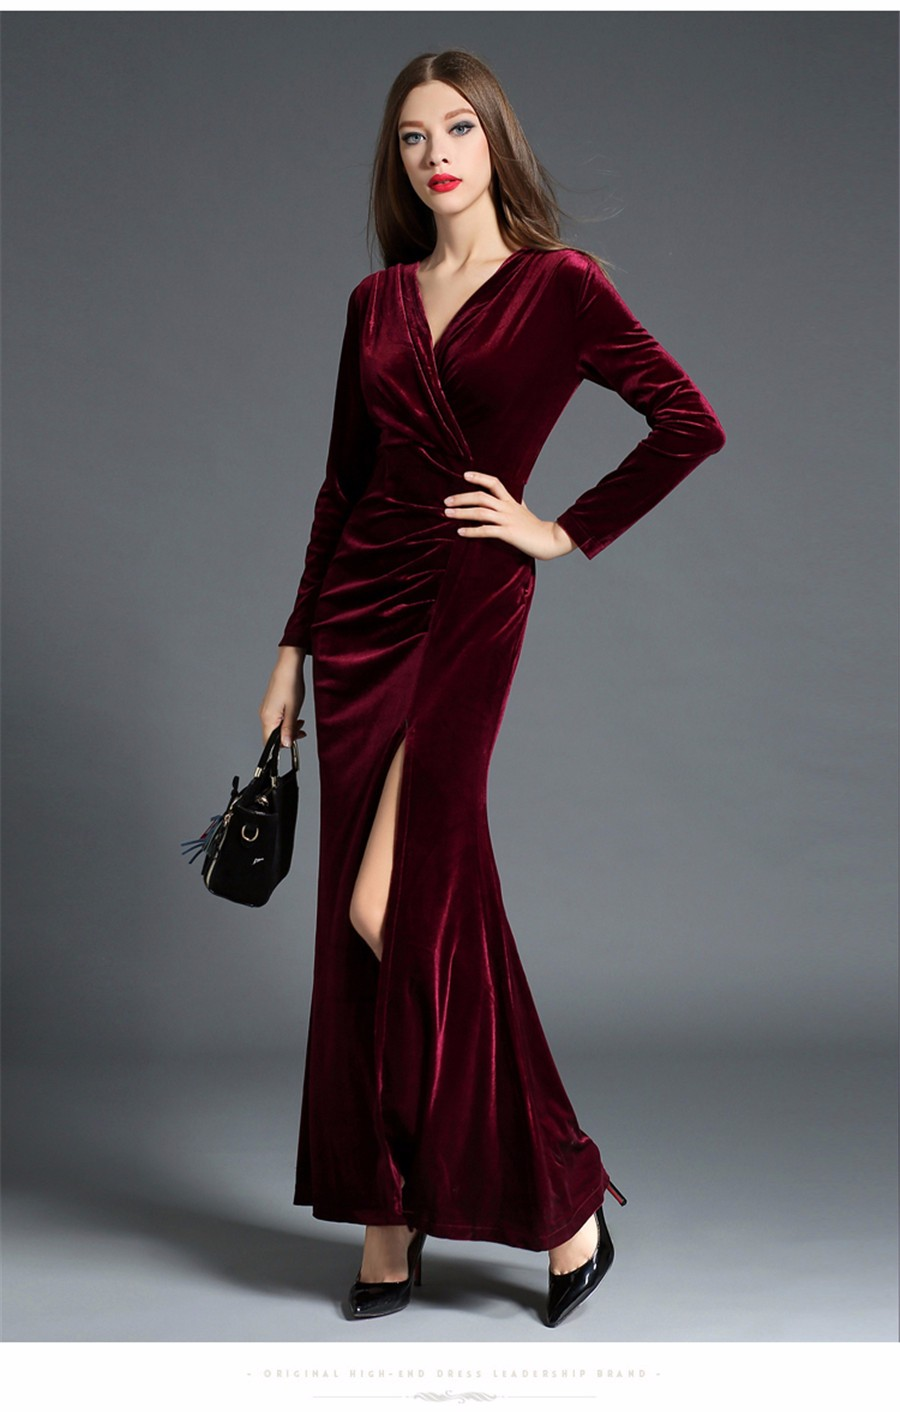 17 Autumn Winter Evening Party Dresses Red Velvet Dress Women Sexy High Split Long Maxi Dresses Christmas Runway Vestido Longo 13